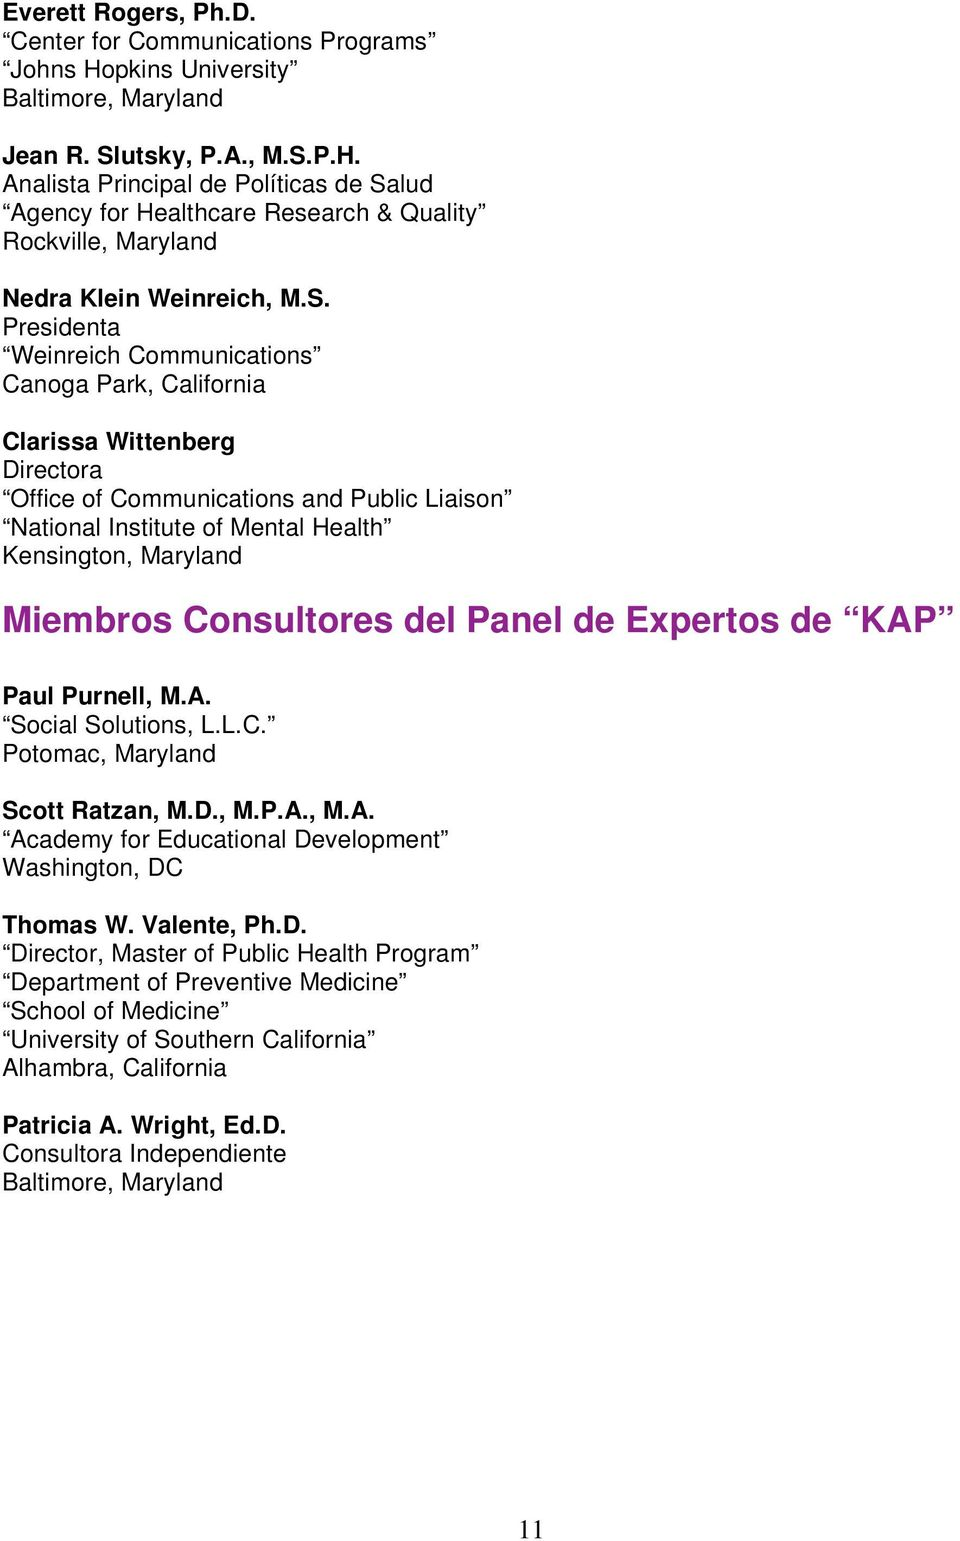 Miembros Consultores del Panel de Expertos de KAP Paul Purnell, M.A. Social Solutions, L.L.C. Potomac, Maryland Scott Ratzan, M.D., M.P.A., M.A. Academy for Educational Development Washington, DC Thomas W.